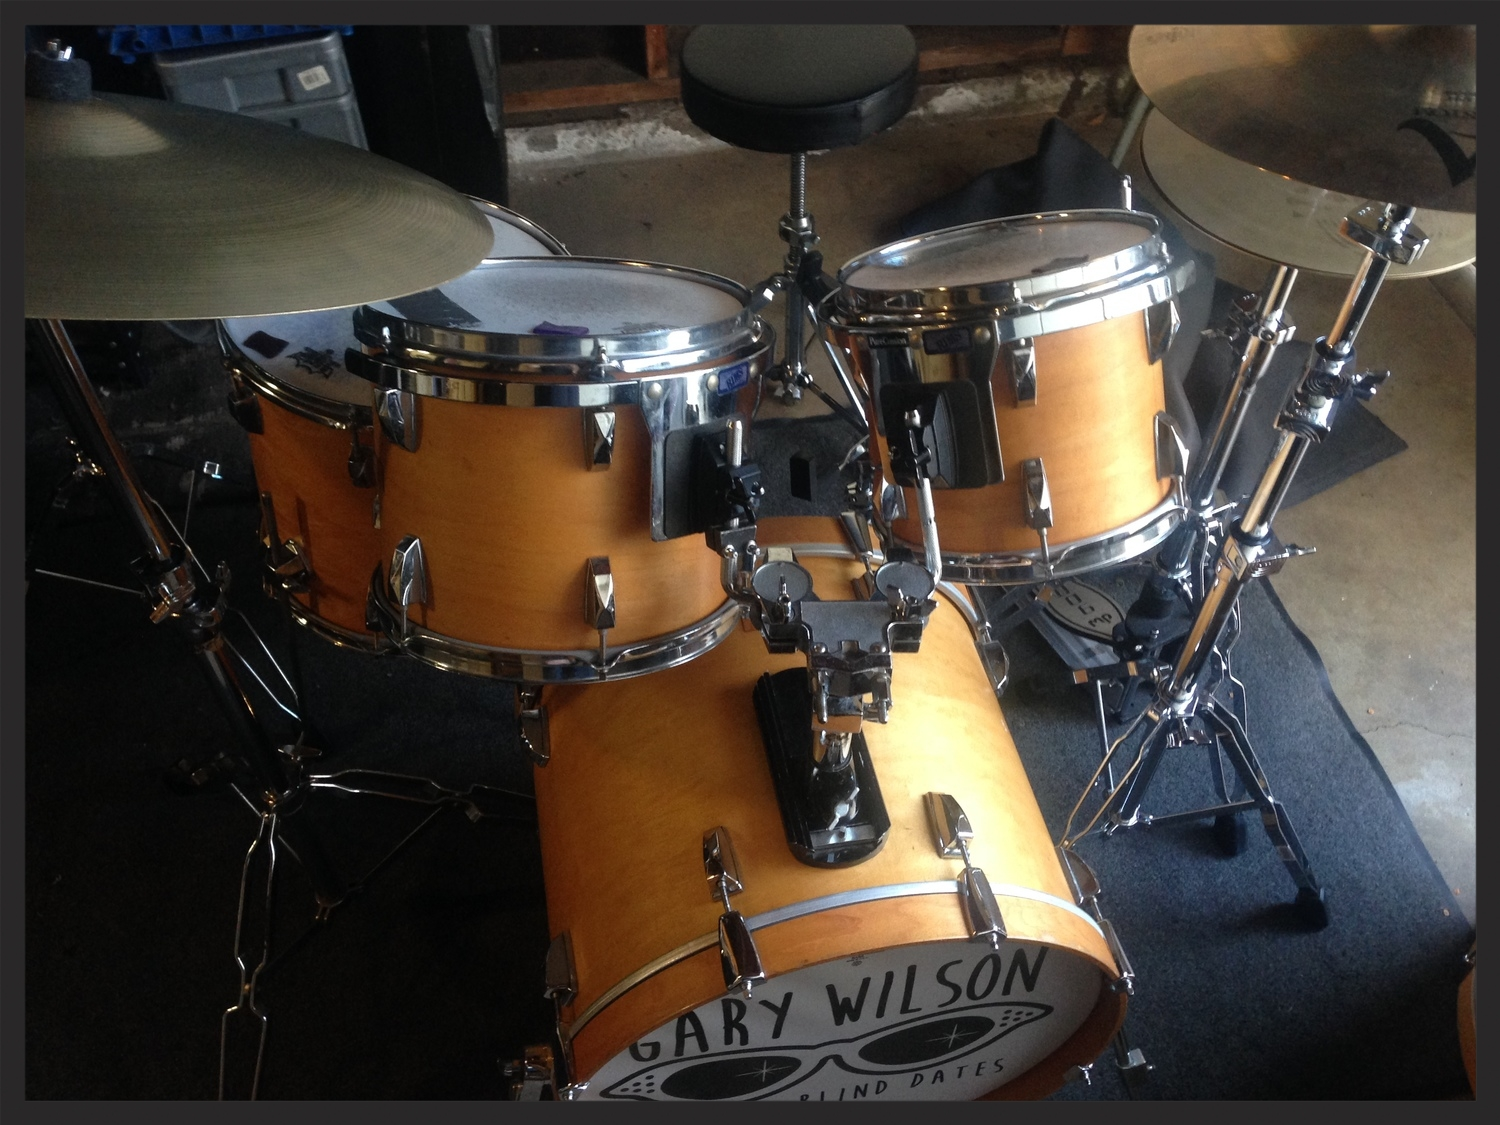 My full drum kit, seen here with a  Gary Wilson  drum logo designed by  Tim Lowman . It's always a treat to bring this drum kit on the gigs dearest to my heart, like Gary's.